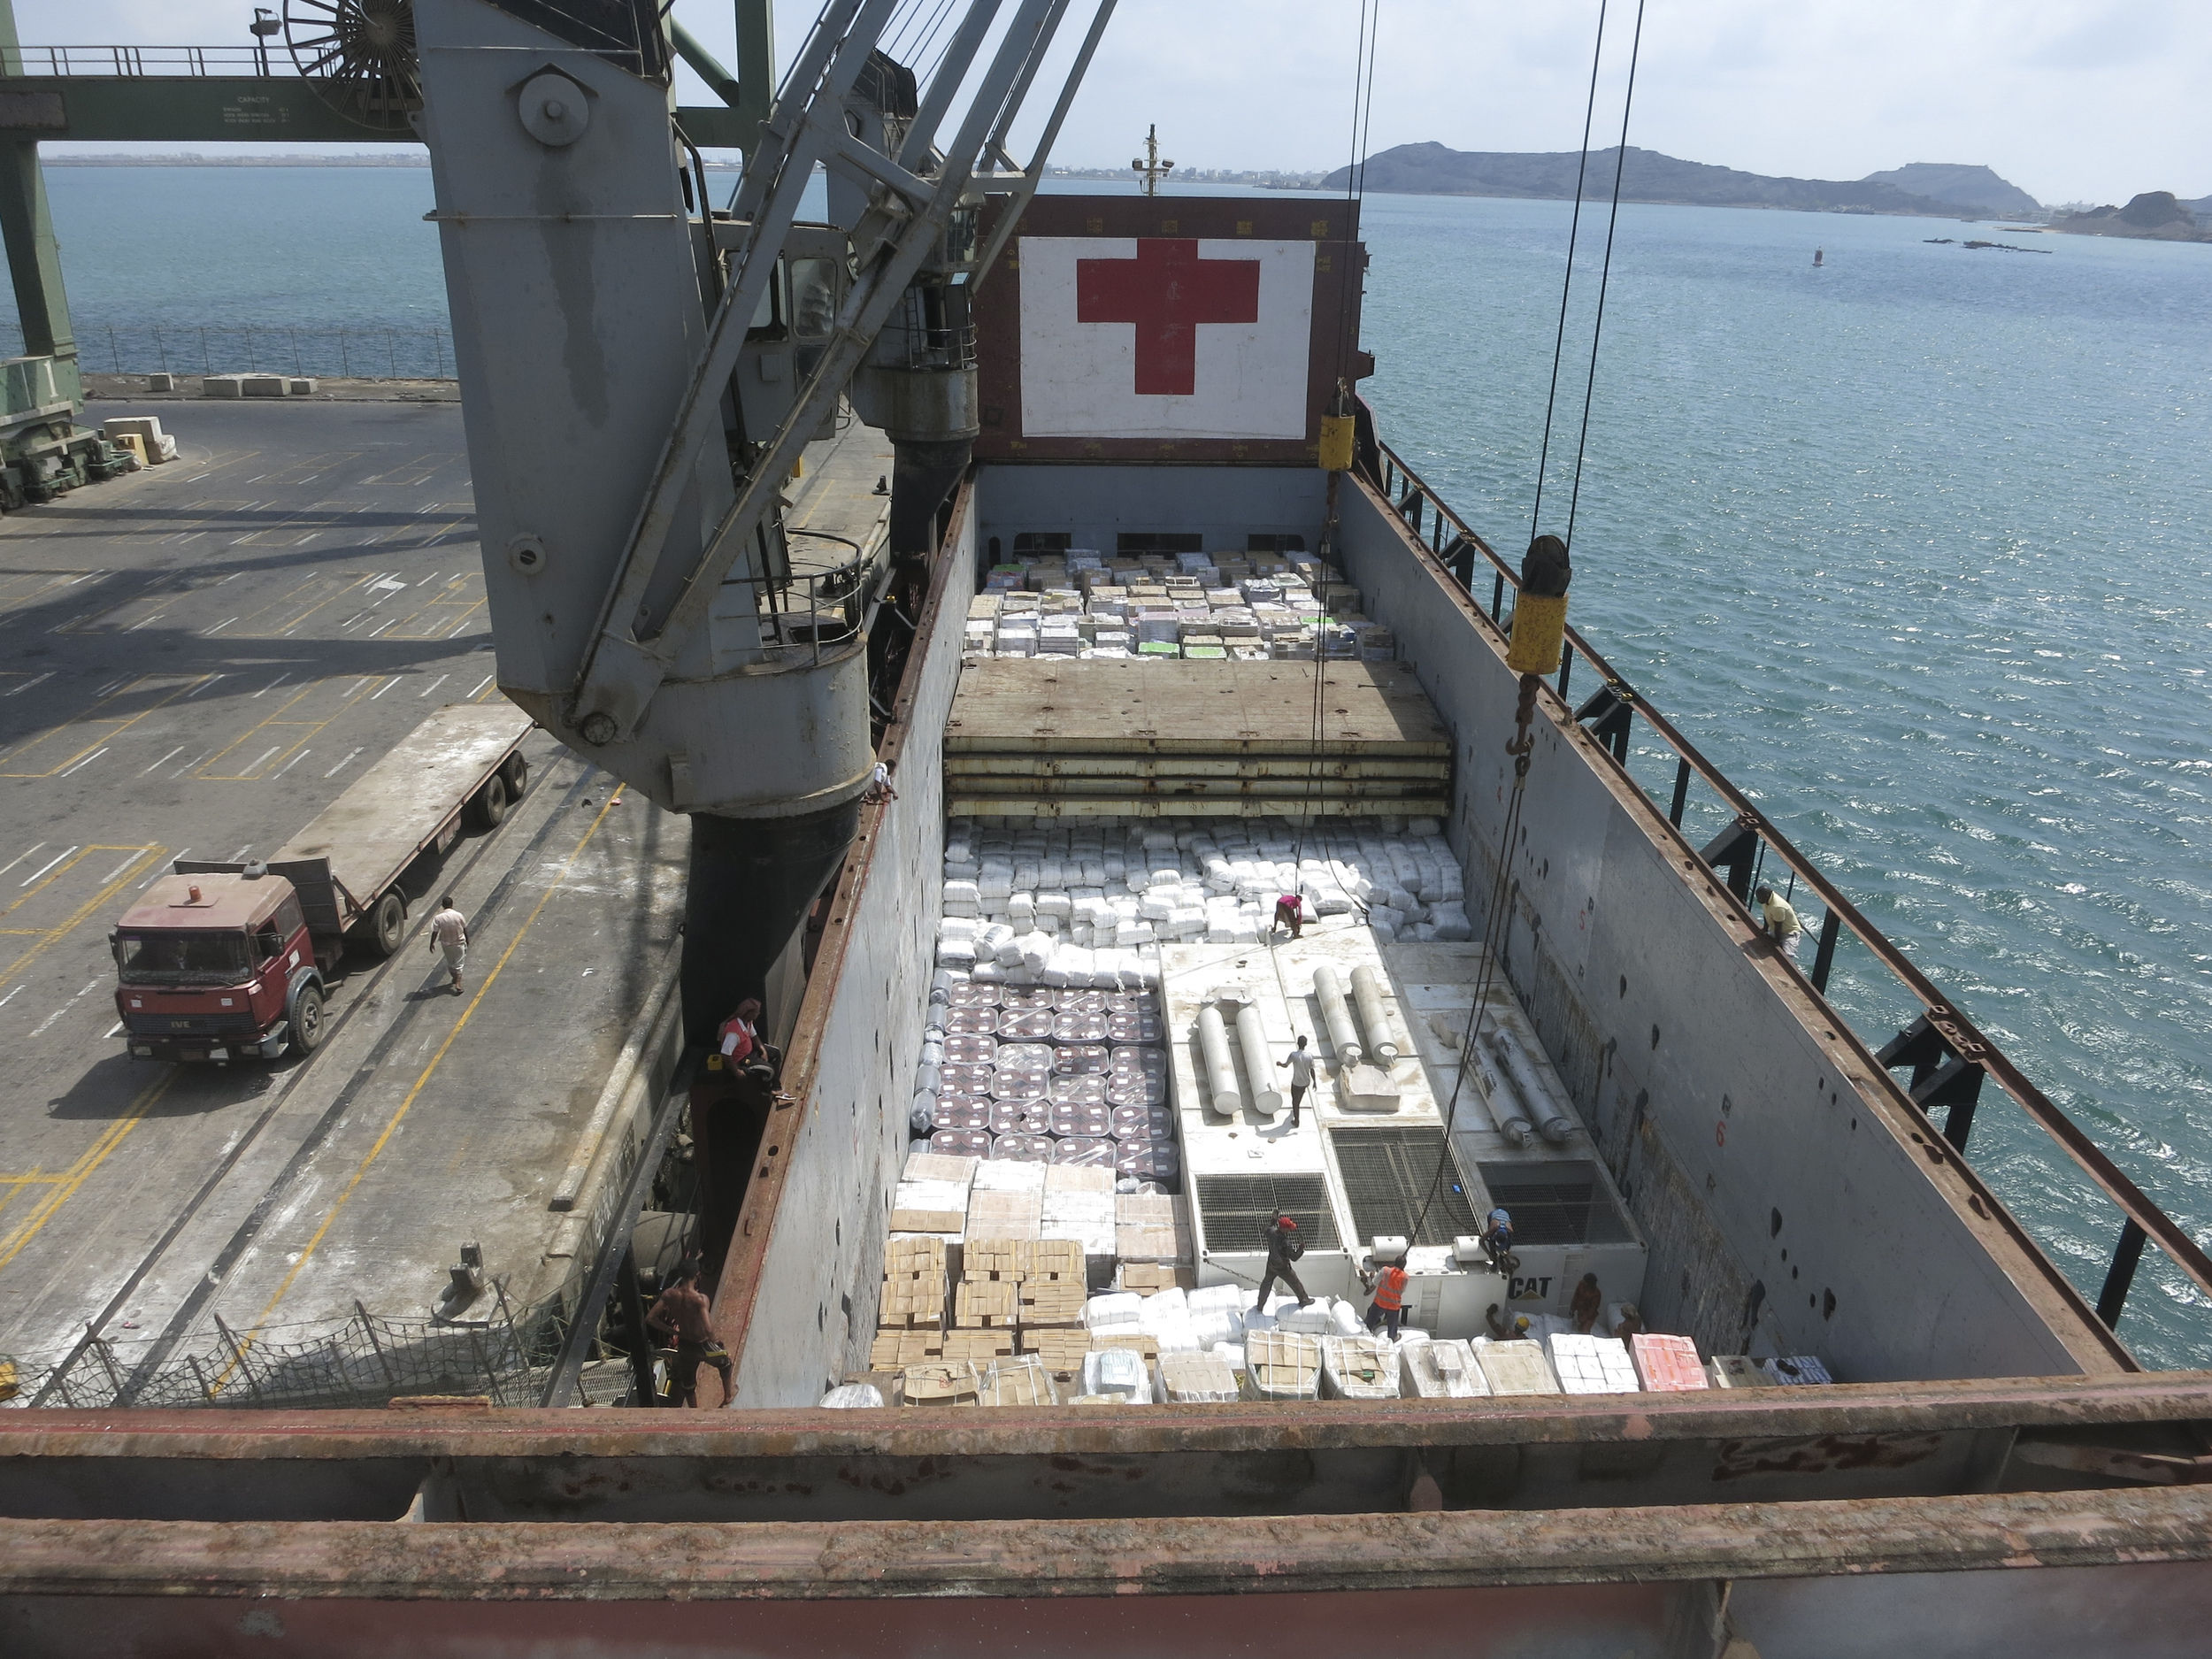 Aden port. three 1.5 MW generators arrive on an icrc cargo ship along with other assistance items.  these generators will provide 36% of the water consumed in Aden. Mohammed BANAFEA,/ ICRC.